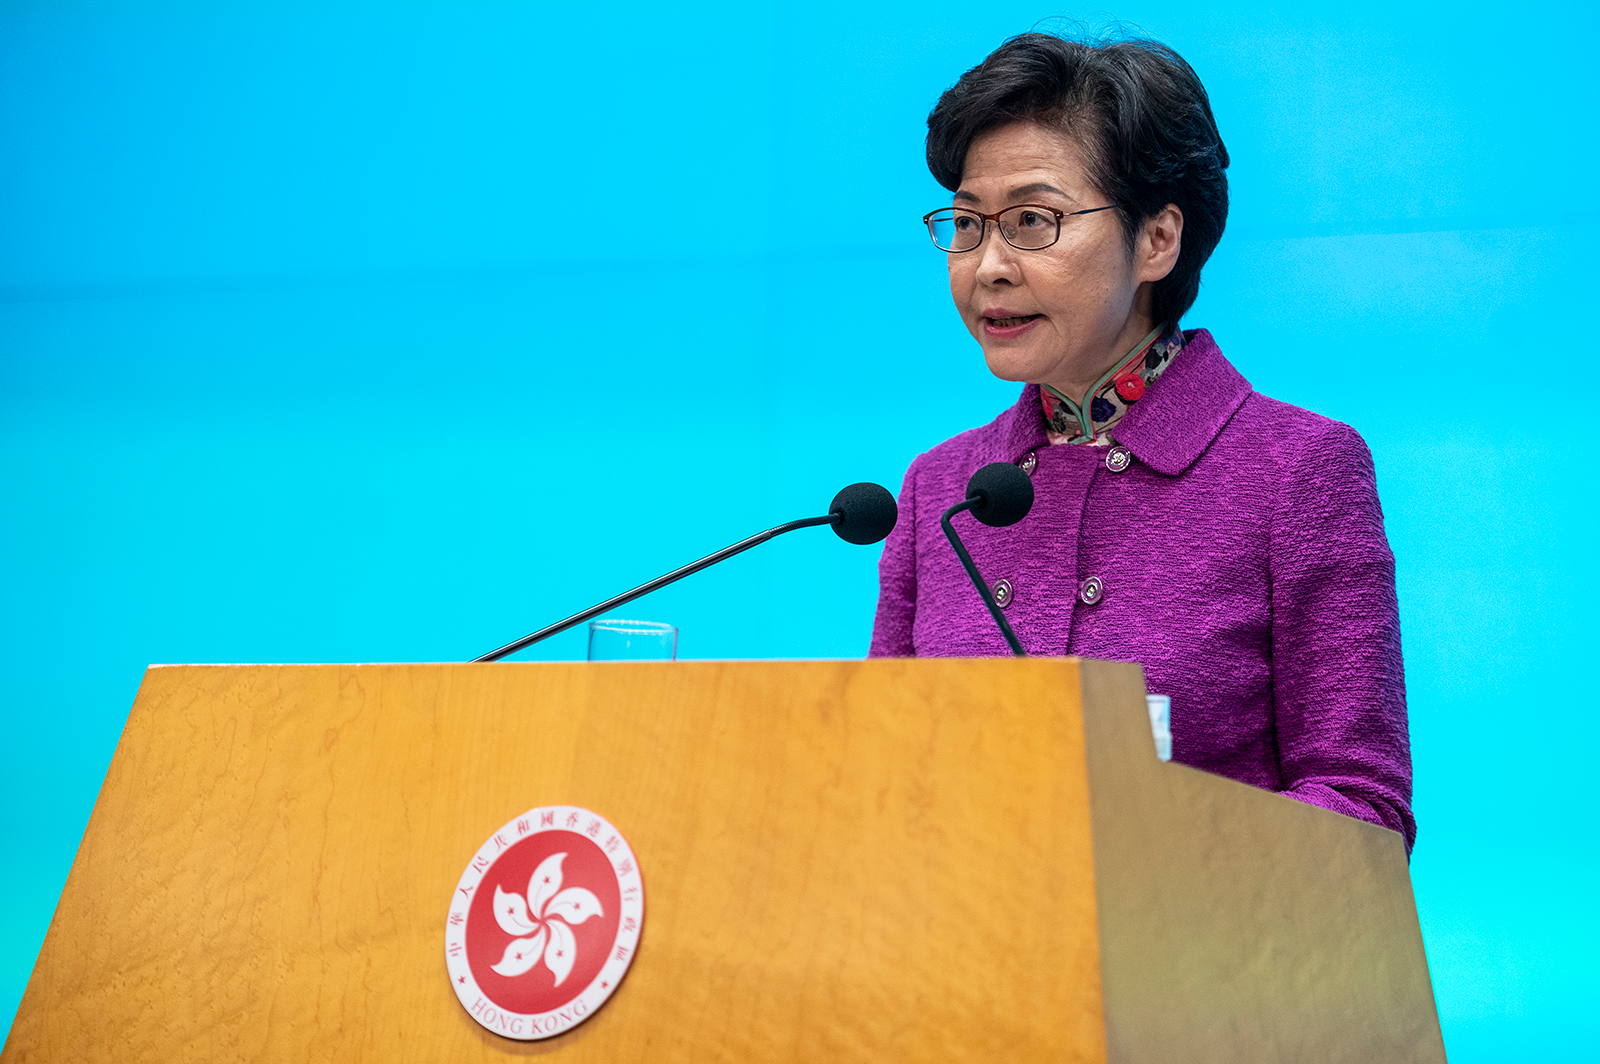 Hong Kong leader Carrie Lam is getting paid in cash because banks won't deal with her